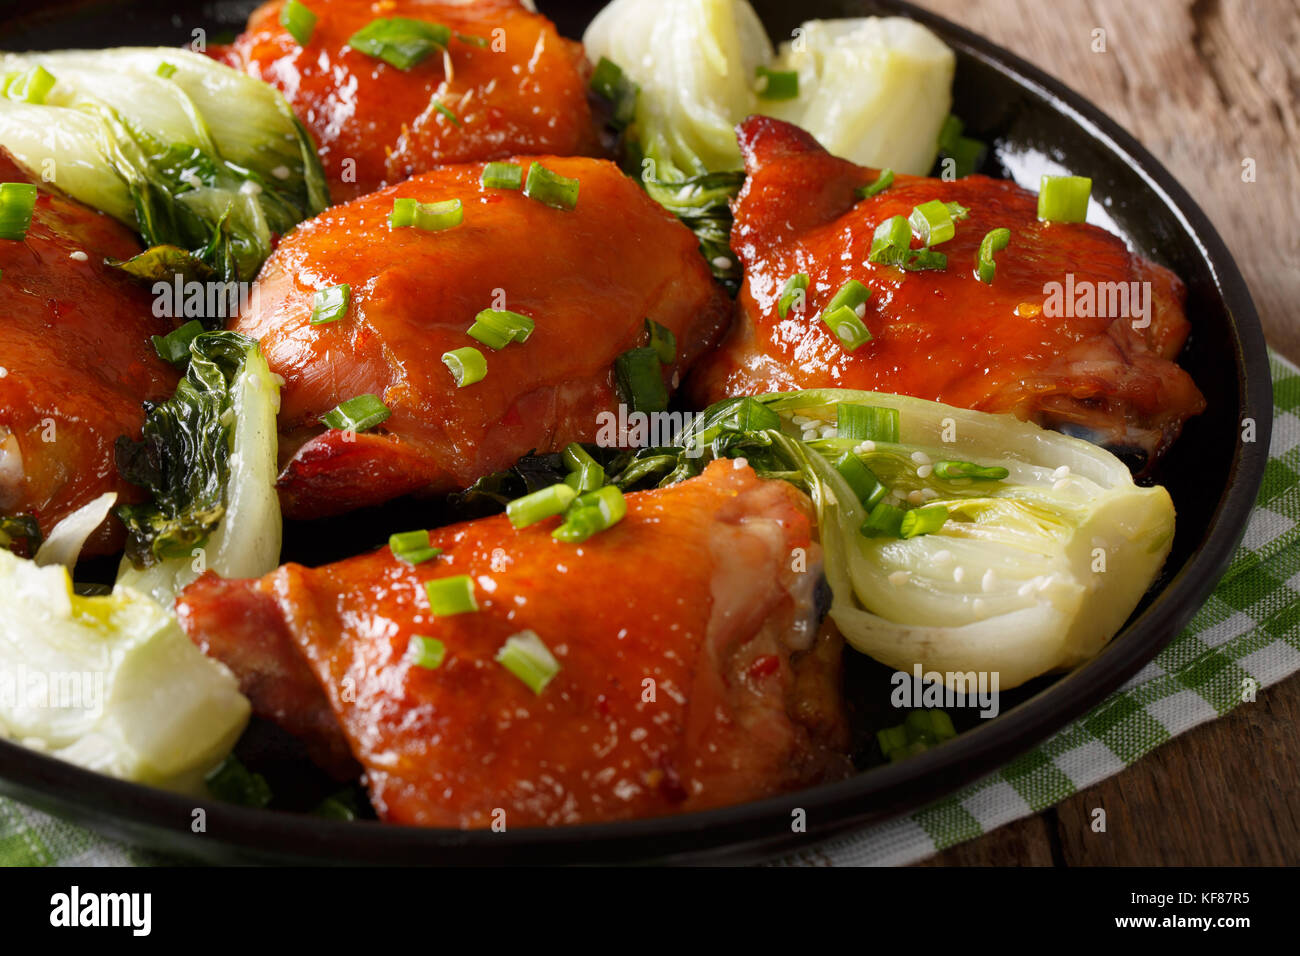 Fried chicken thighs with bok choy and green onions close-up on a plate. horizontal - Stock Image